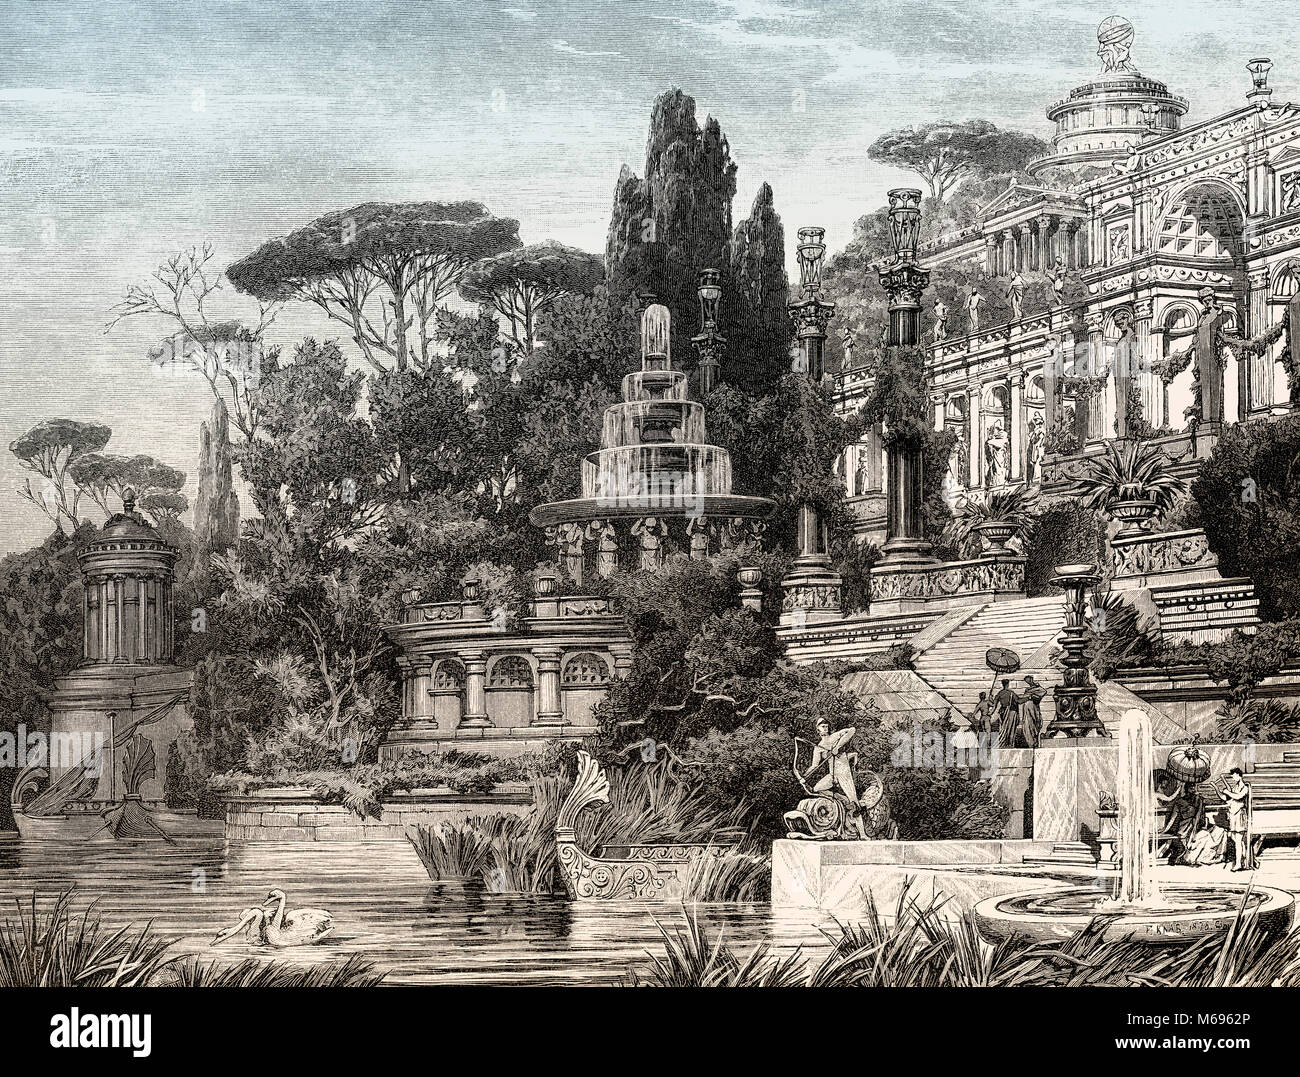 Luxurious villa in ancient Rome - Stock Image